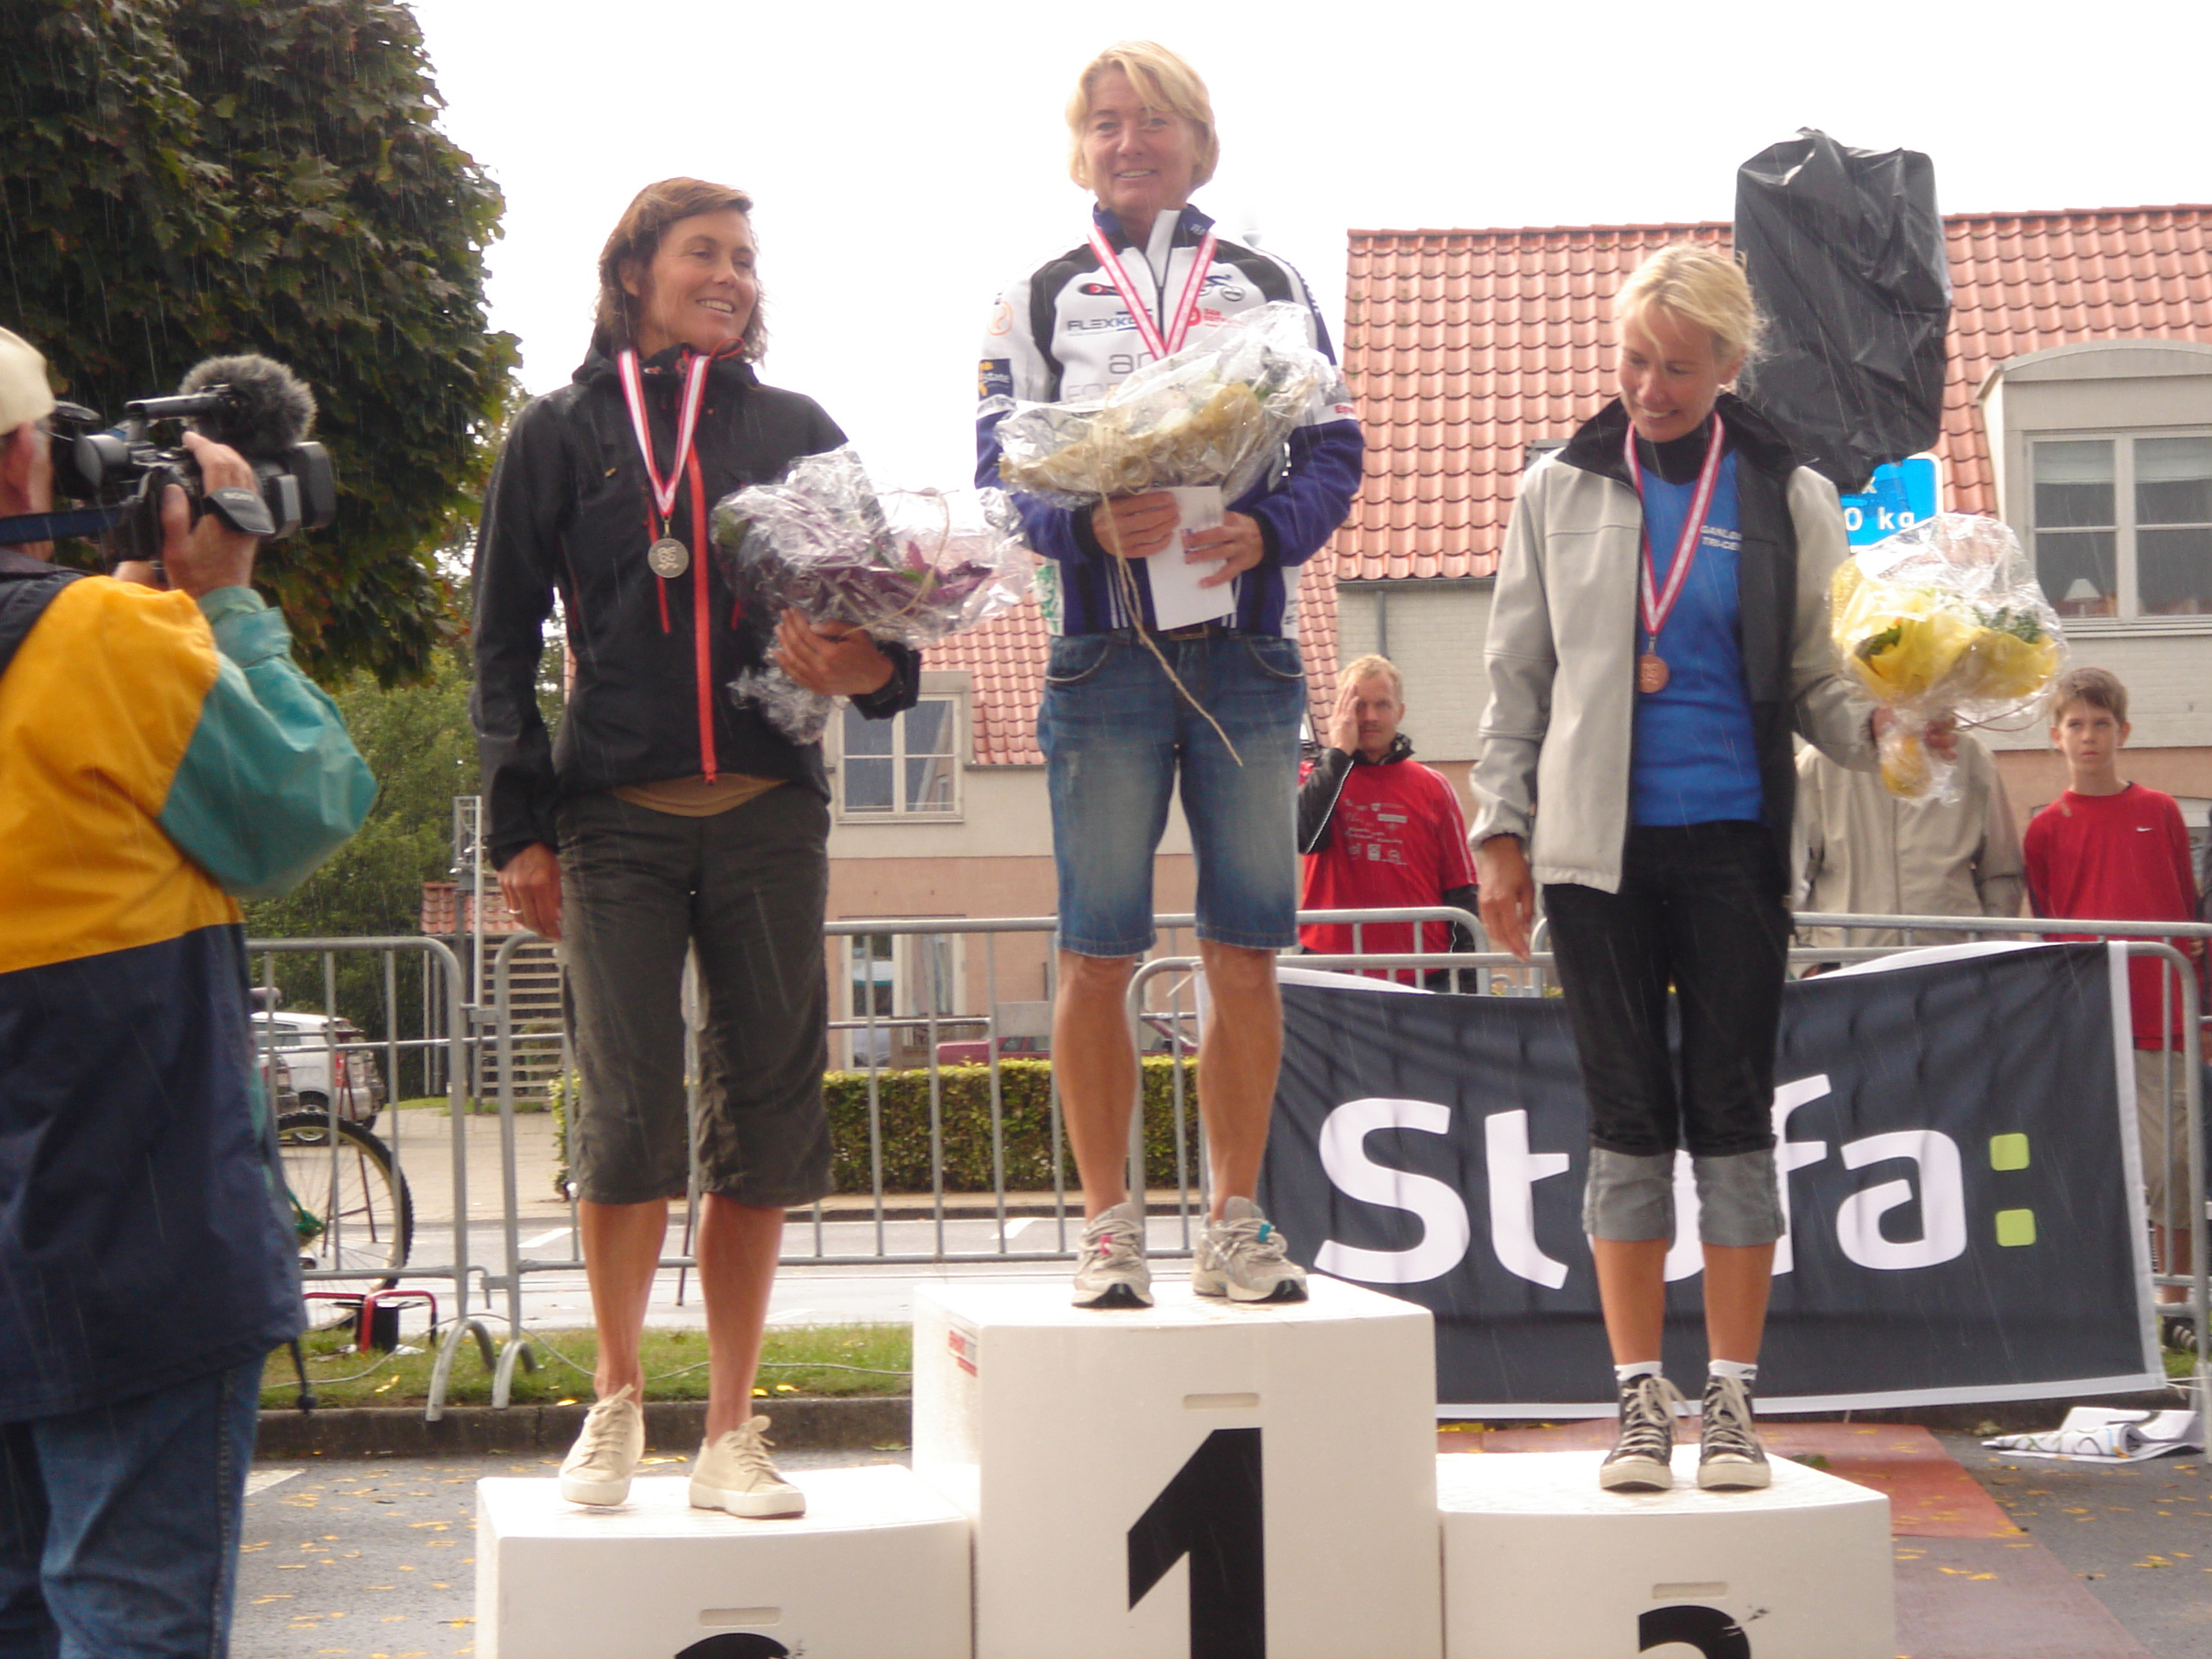 2nd by Danish Championship on 1/2 ironman